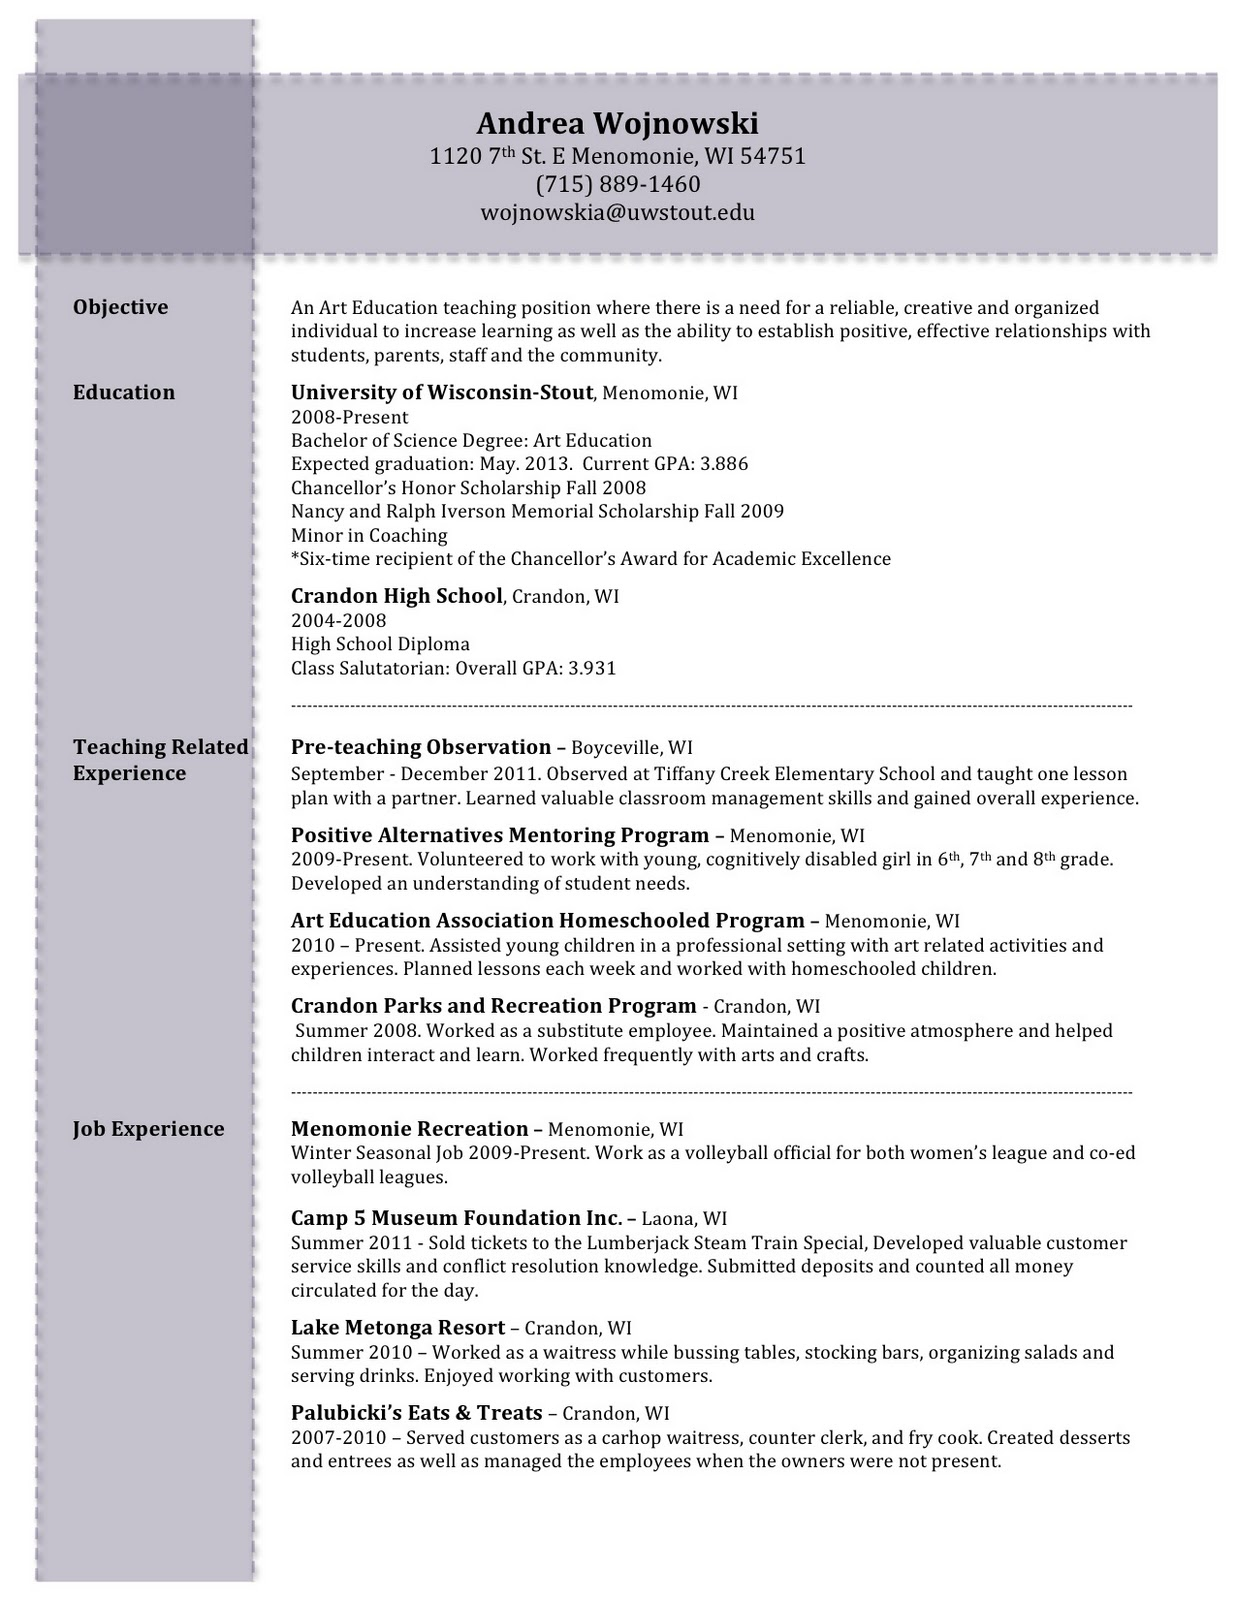 Good Qualifications To Put On A Resume Art Education Field Experience Resume Writing